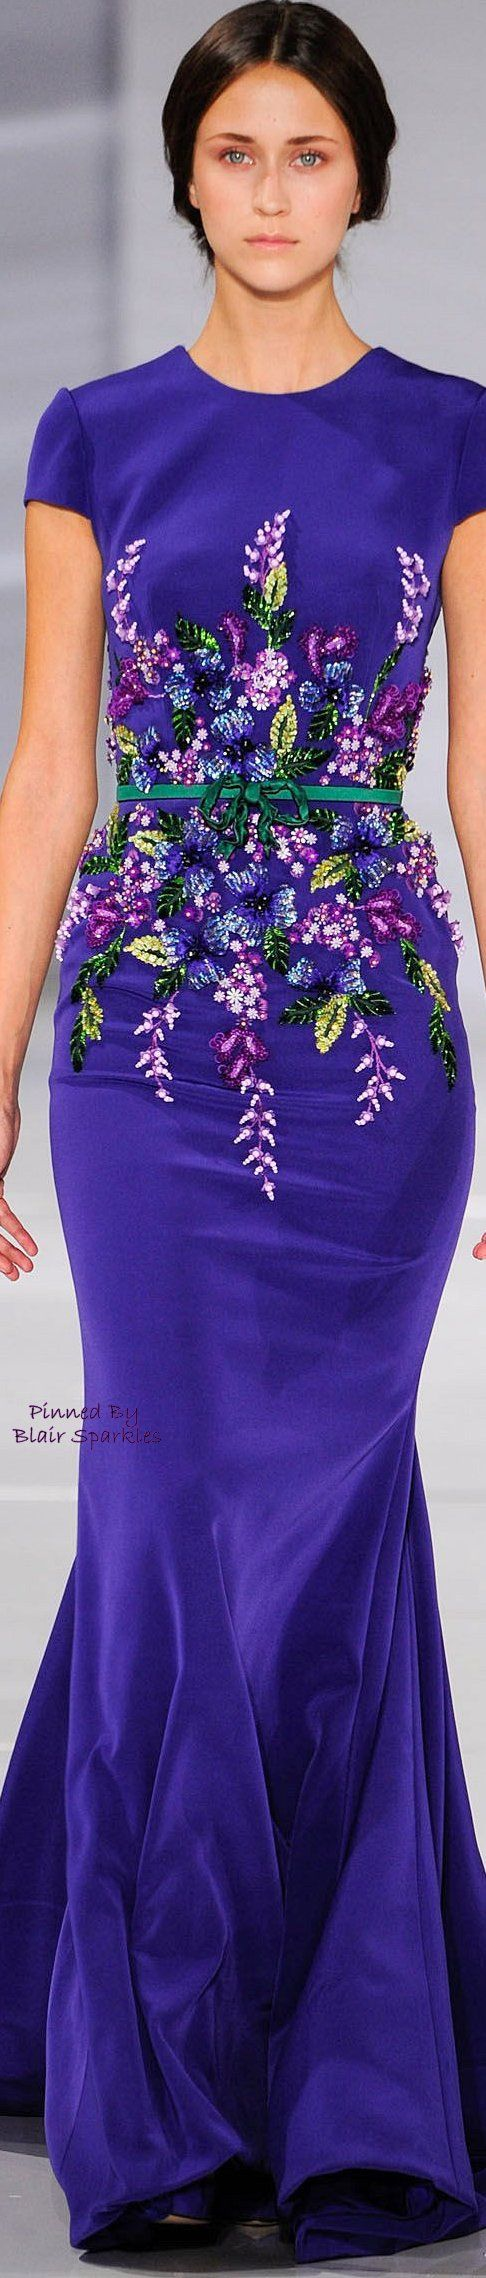 FALL COUTURE 2015 GEORGES HOBEIKA ~ ♕♚εїз | BLAIR SPARKLES |